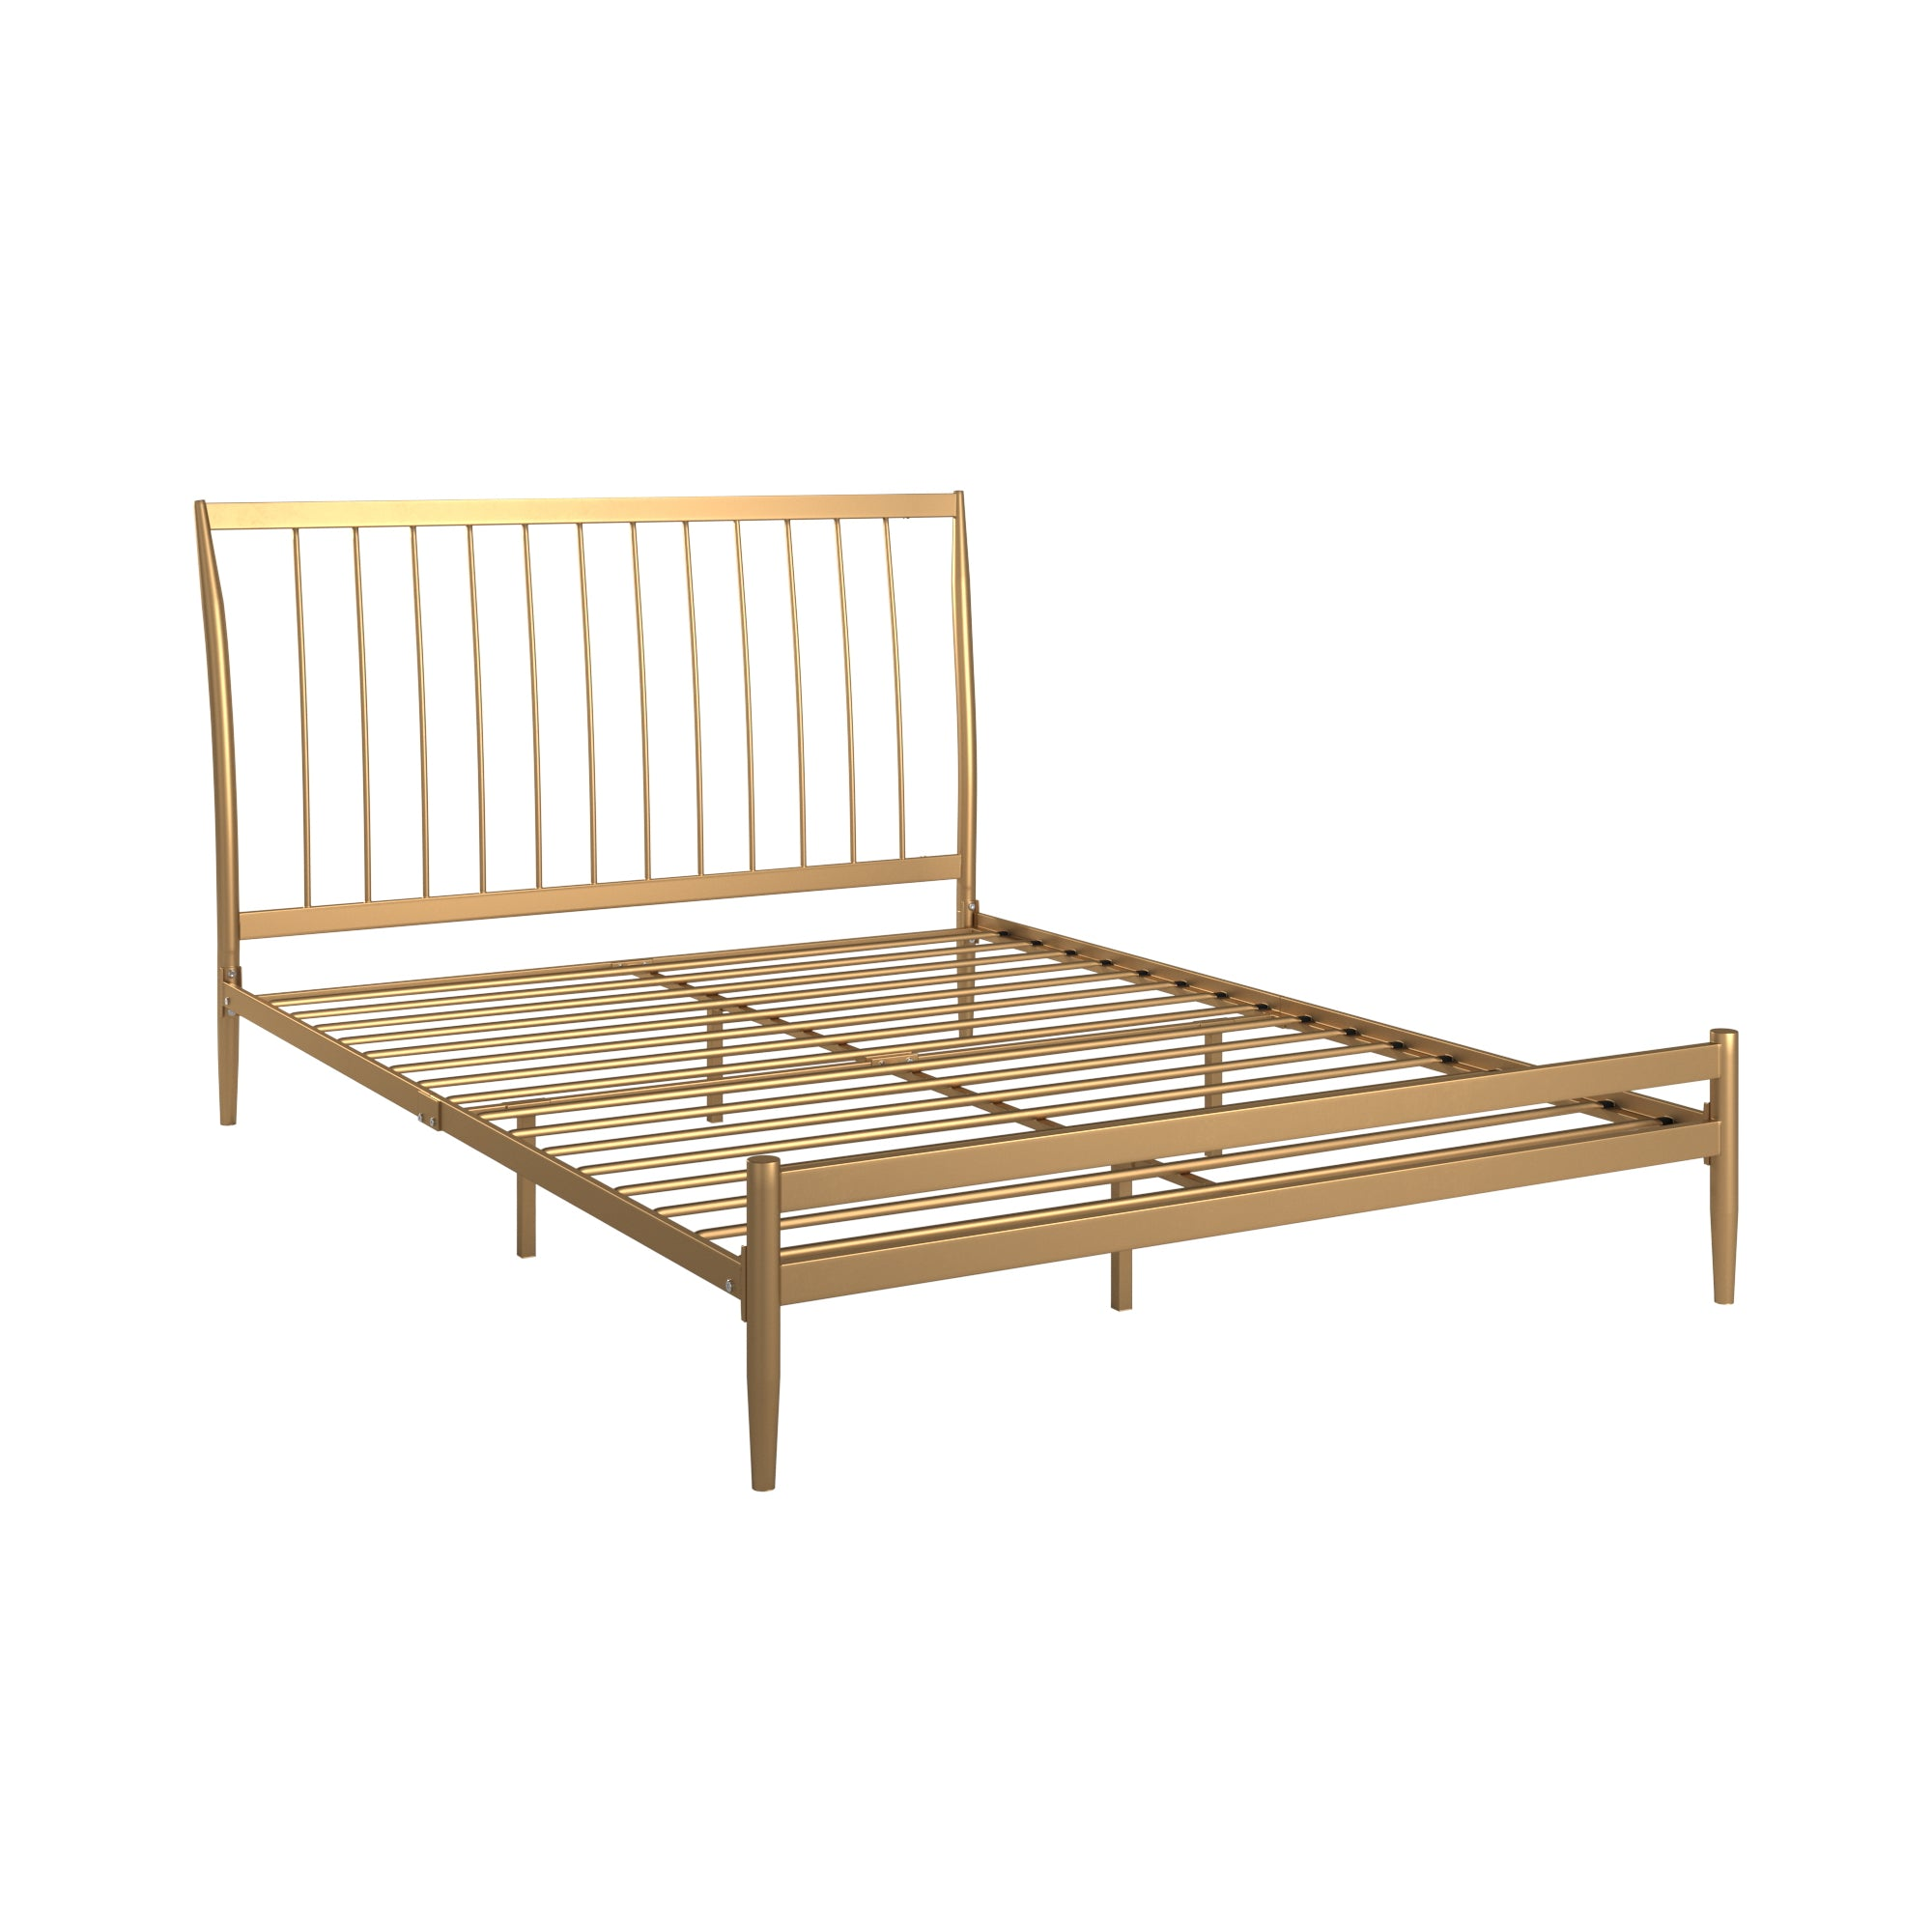 Gold Finish Metal Bed - Full (Full Size)